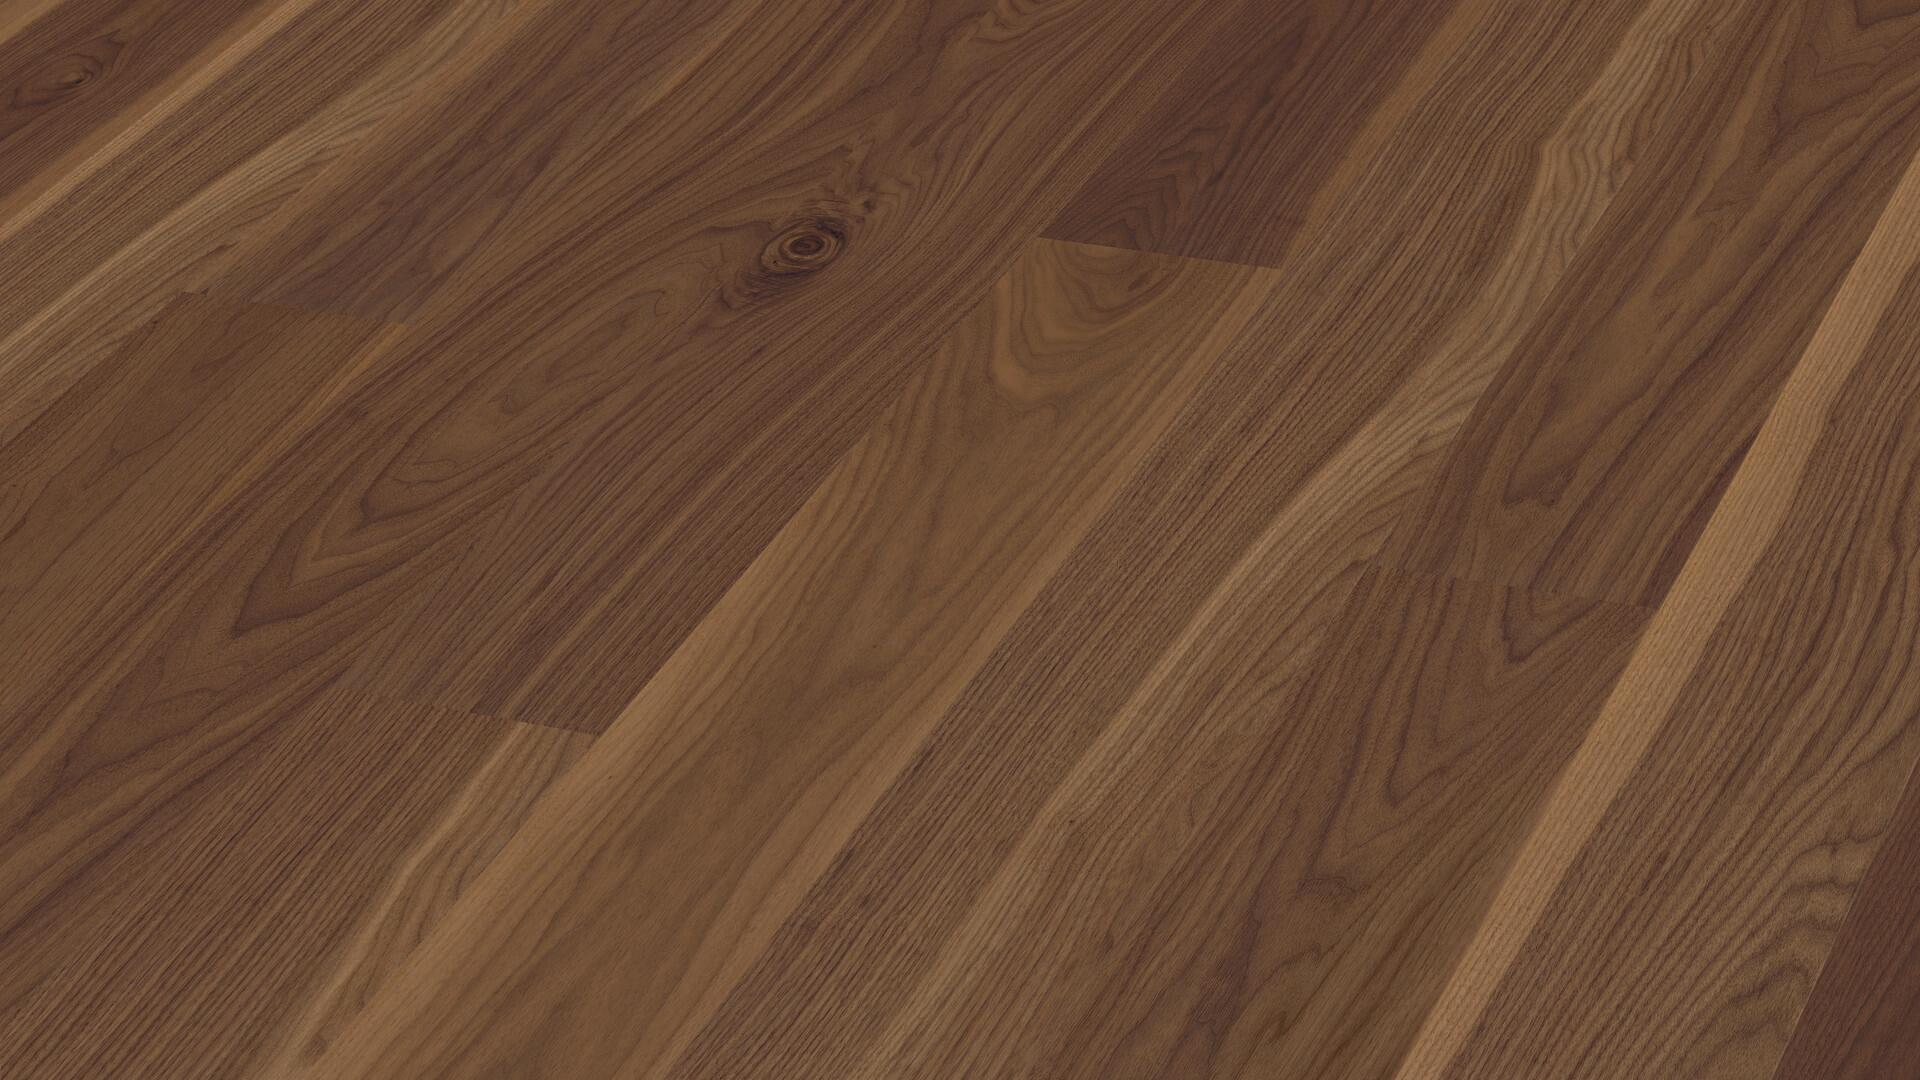 Parquet flooring MeisterParquet. longlife PD 400 American walnut lively 8275